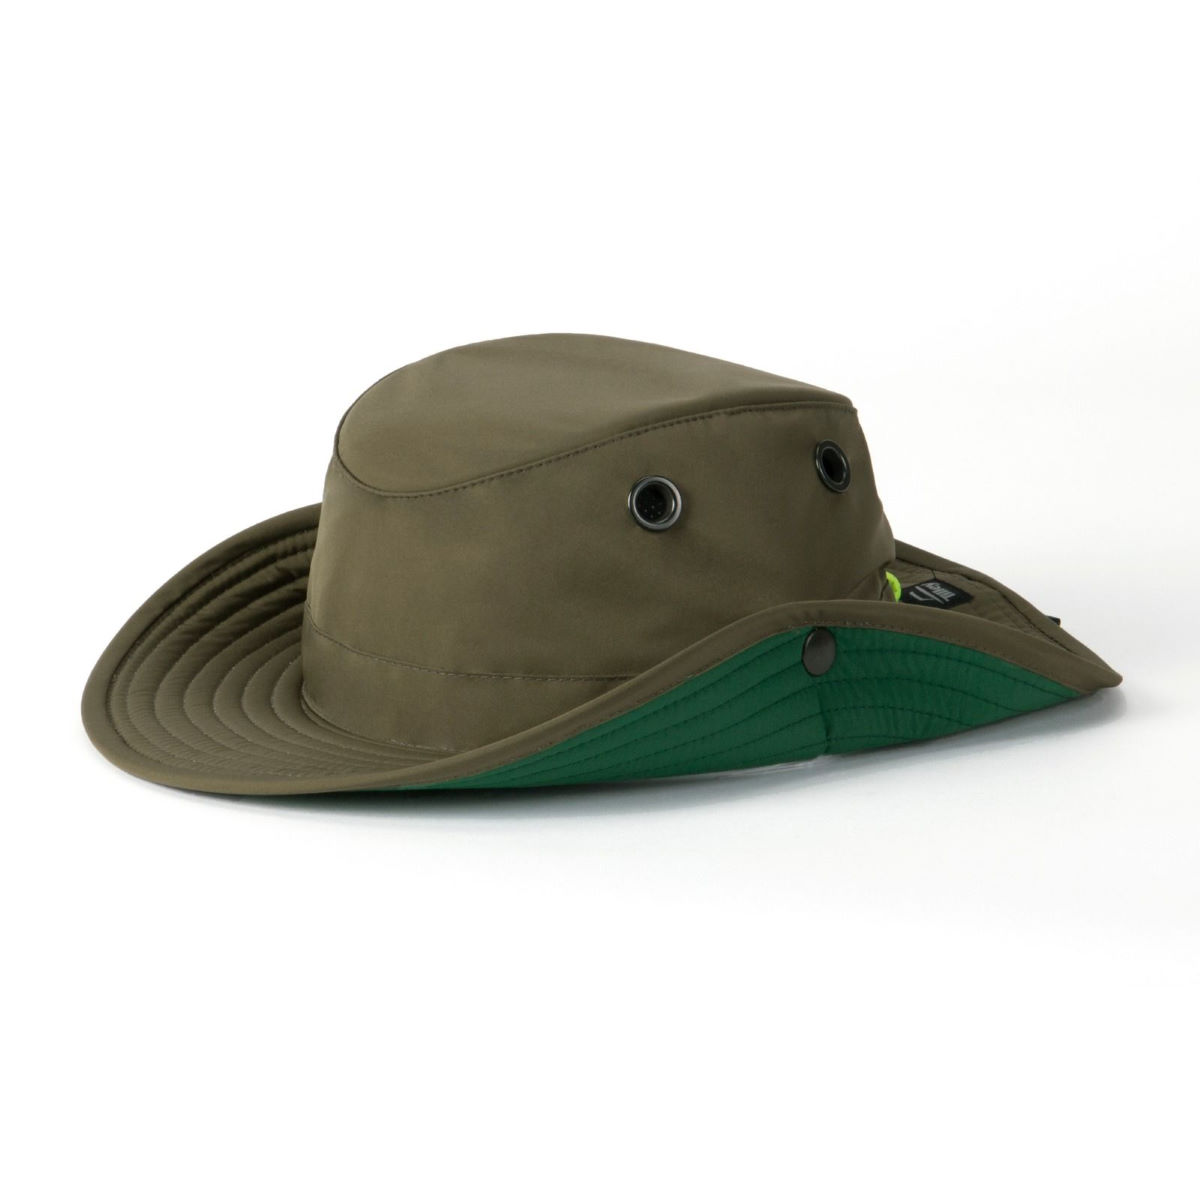 Tilley Paddlers Hat - Sombreros